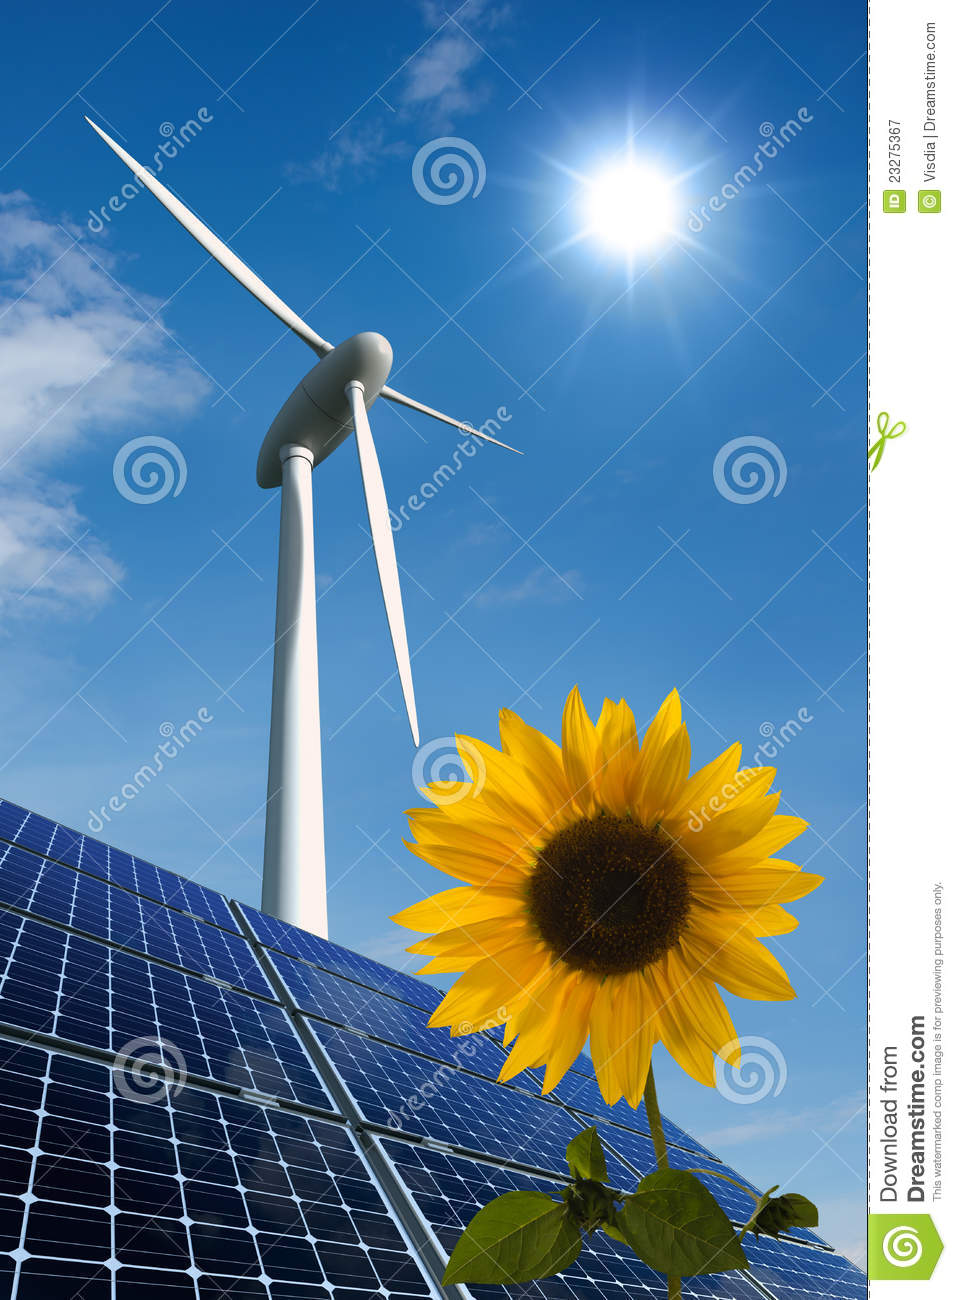 Solar Panels, Wind Turbine And Sunflower Royalty Free Stock ...